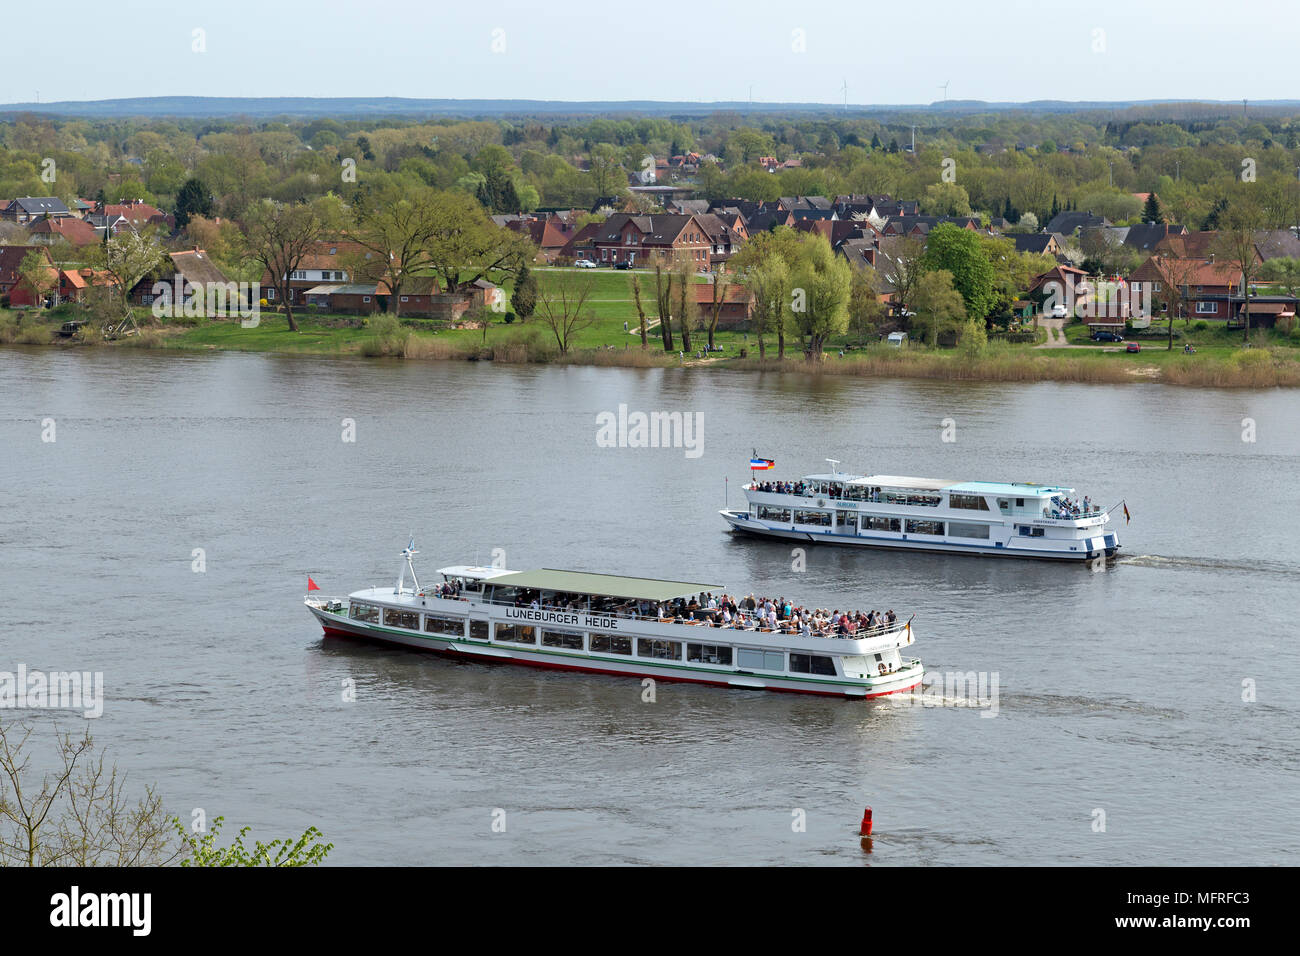 Elbe shipping festival Kurs-Elbe-Tag, Lauenburg, Schleswig-Holstein, Germany - Stock Image